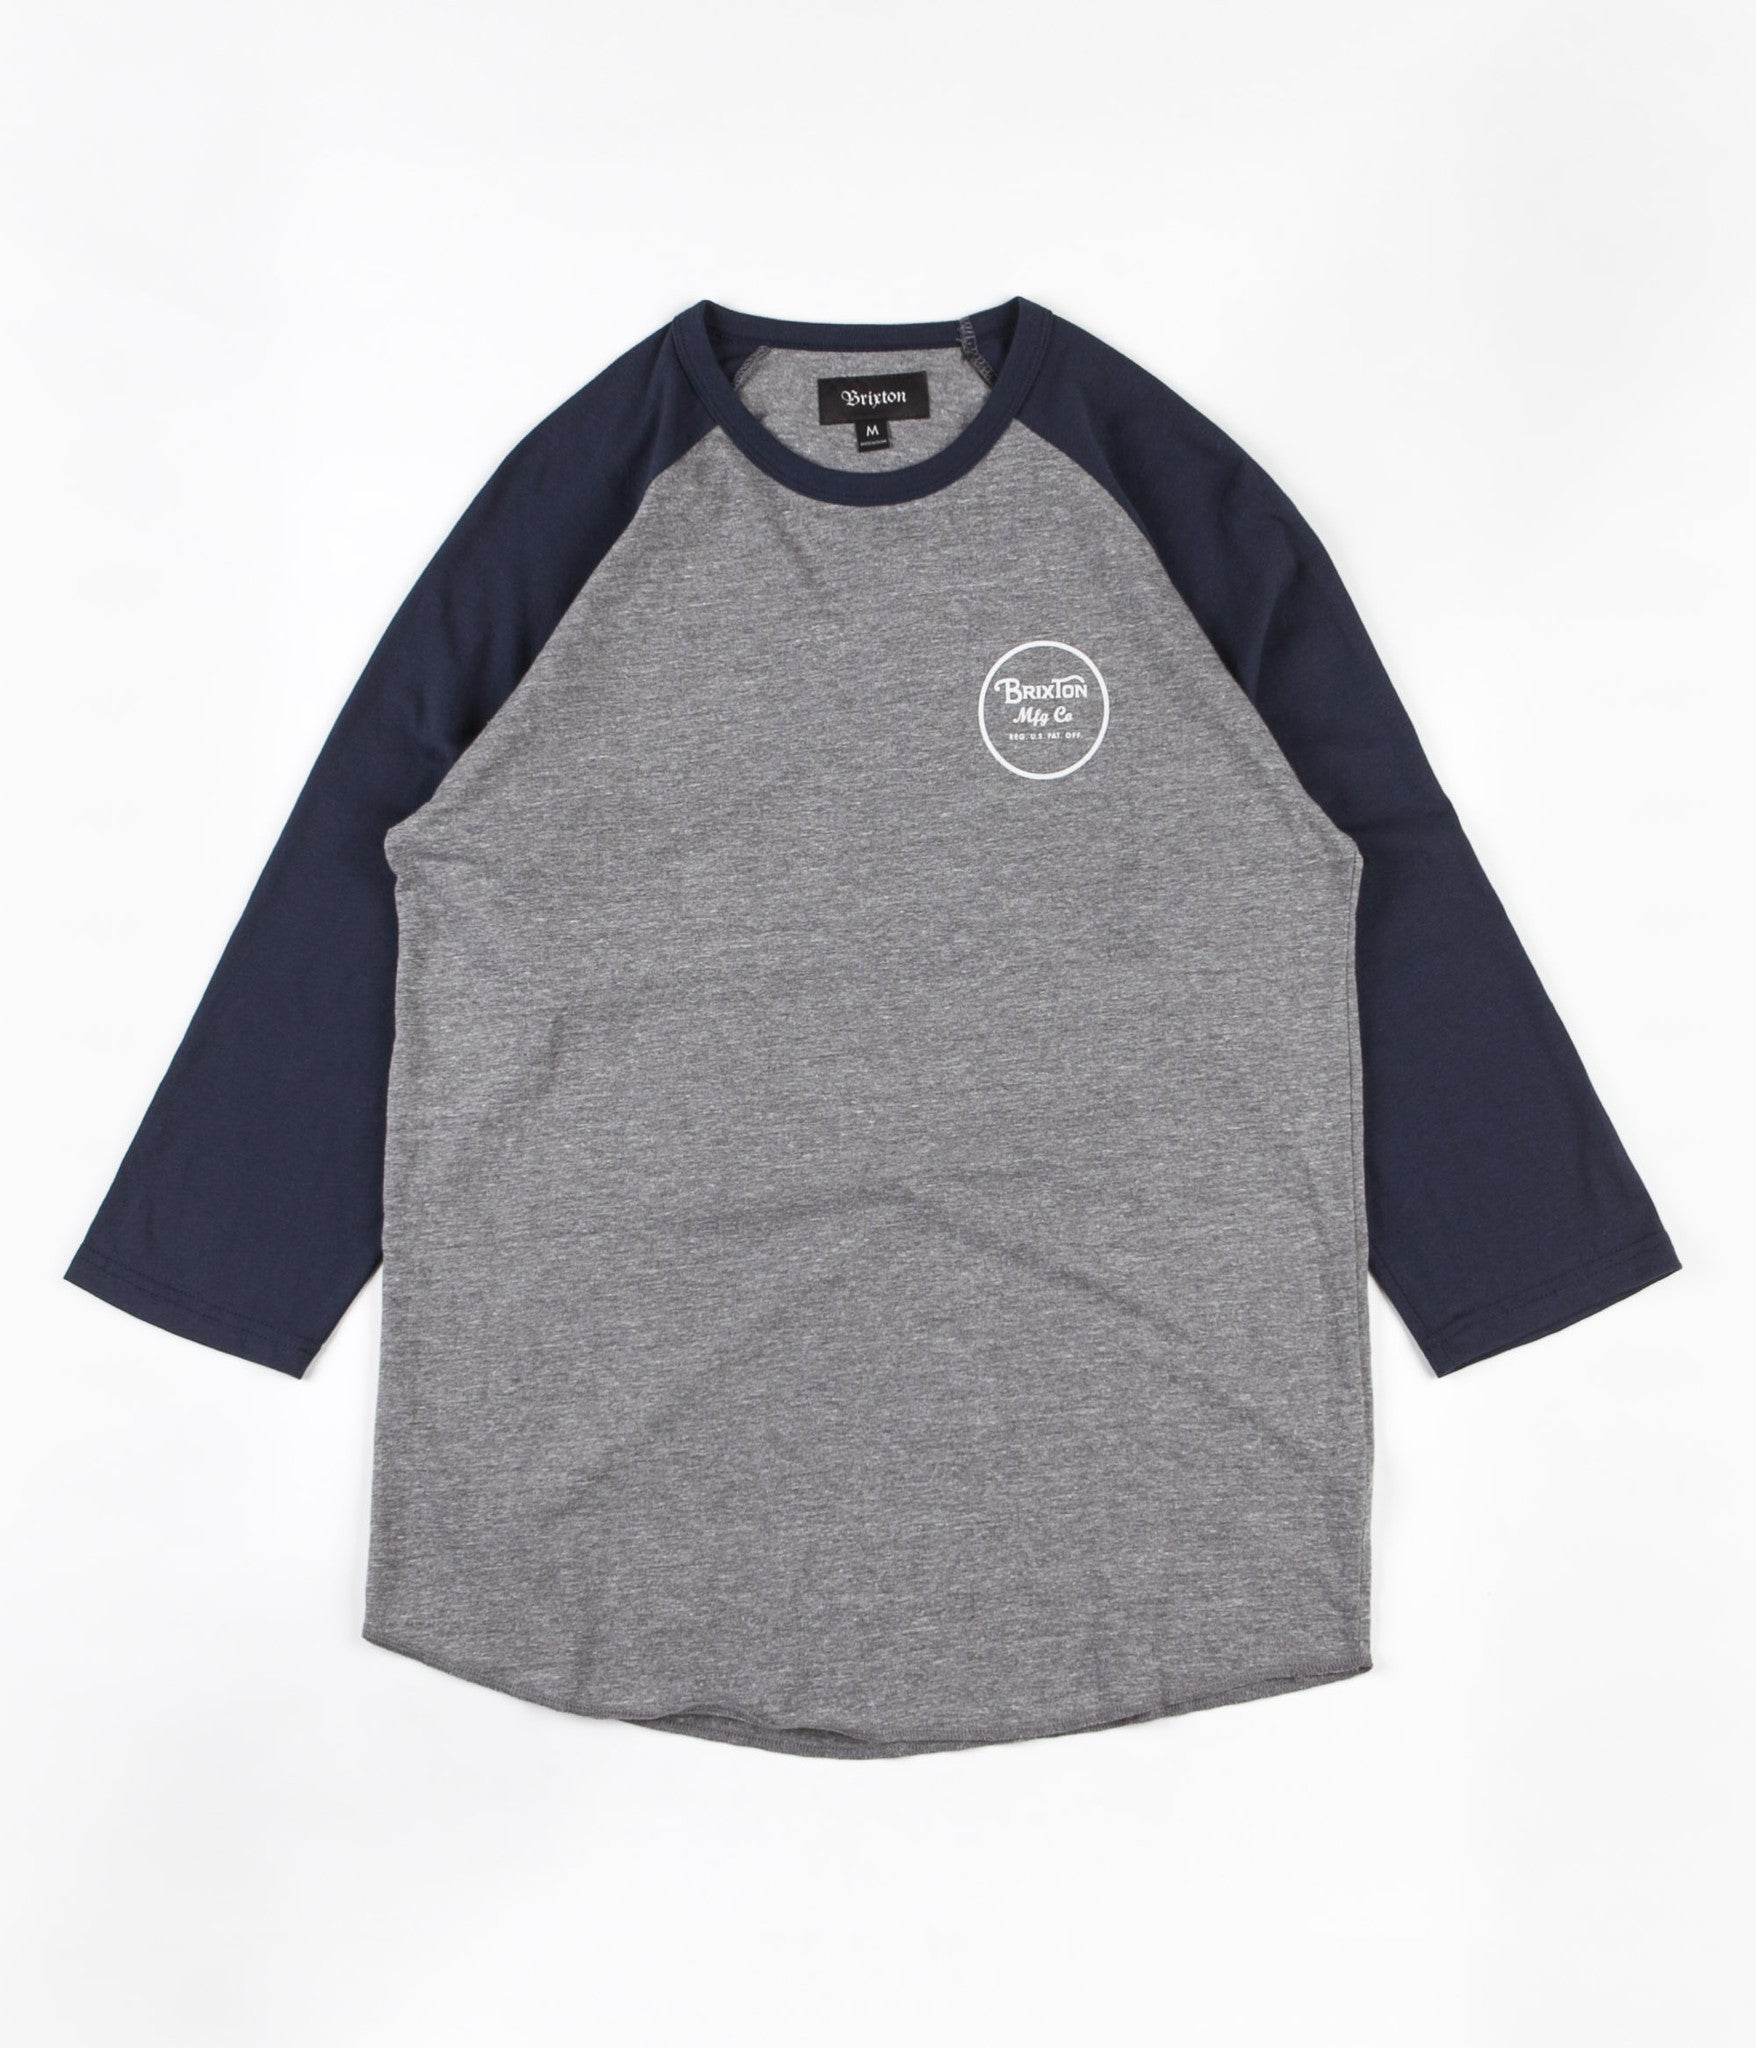 Brixton Wheeler 3/4 Sleeve T-Shirt - Heather Grey / Navy